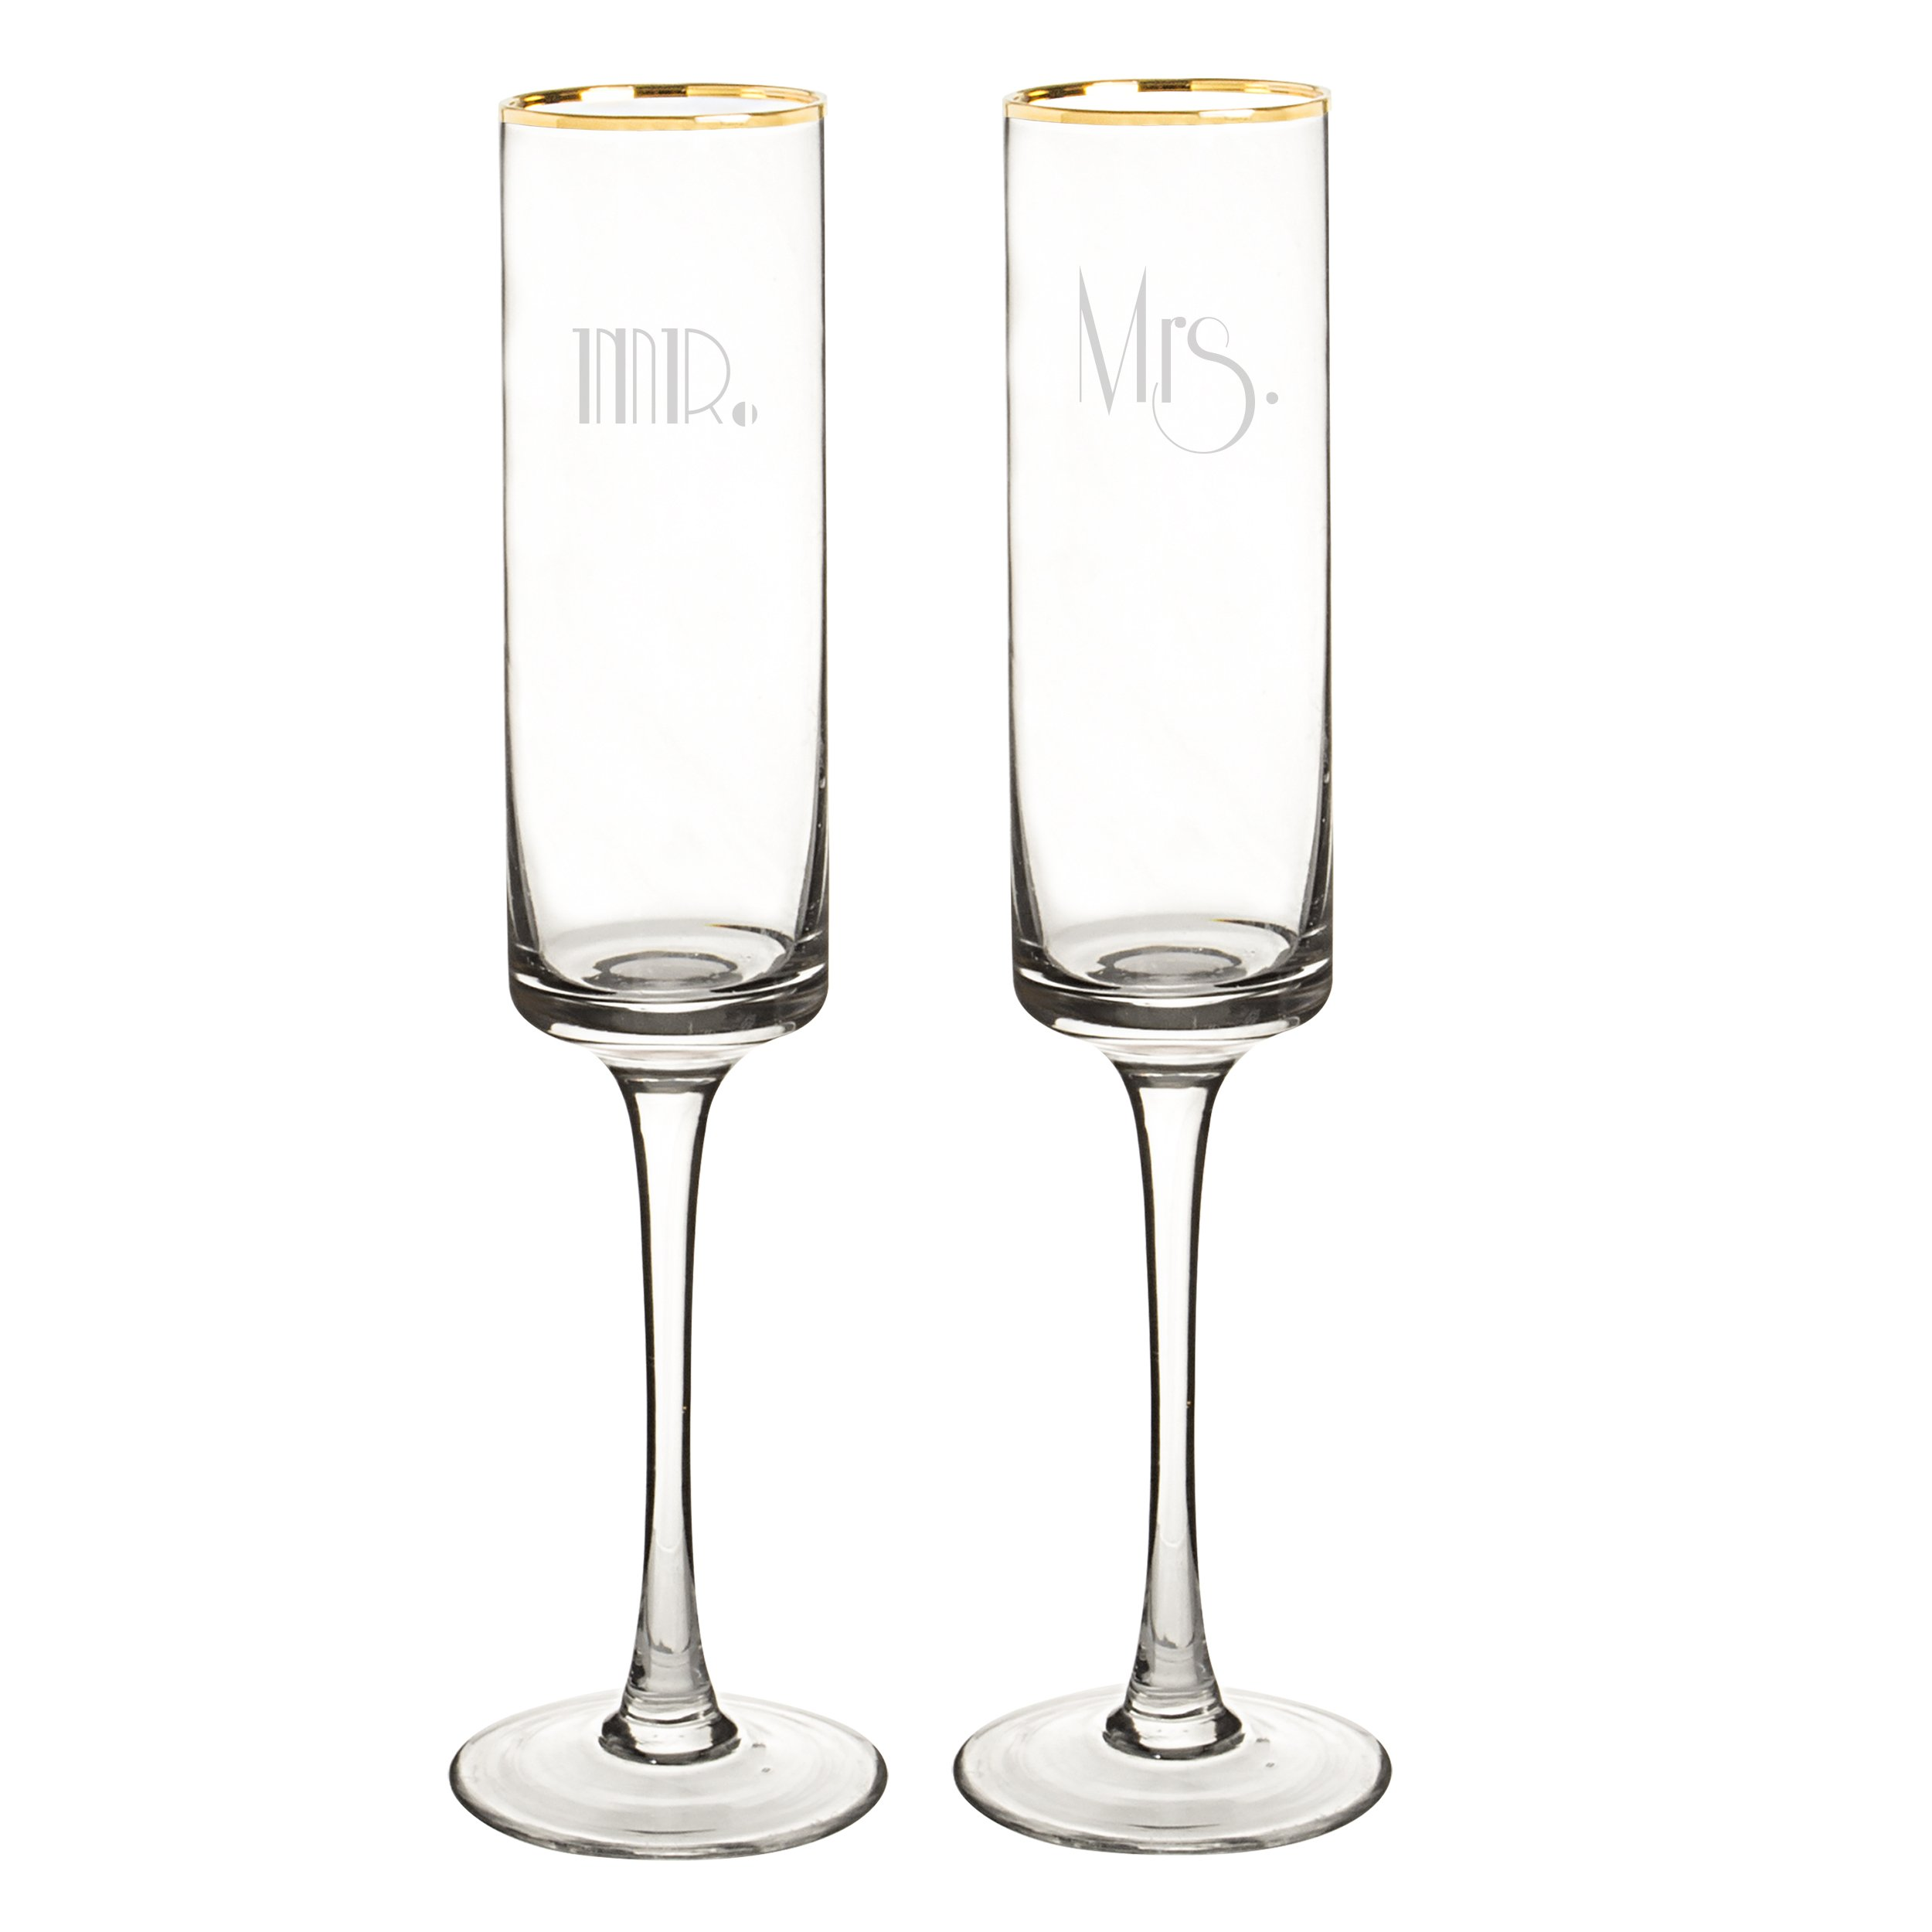 Cathy's Concepts GMM-3668G Mr. & Mrs. Gatsby Rim Contemporary Champagne Flutes, Clear/Gold by Cathy's Concepts (Image #1)